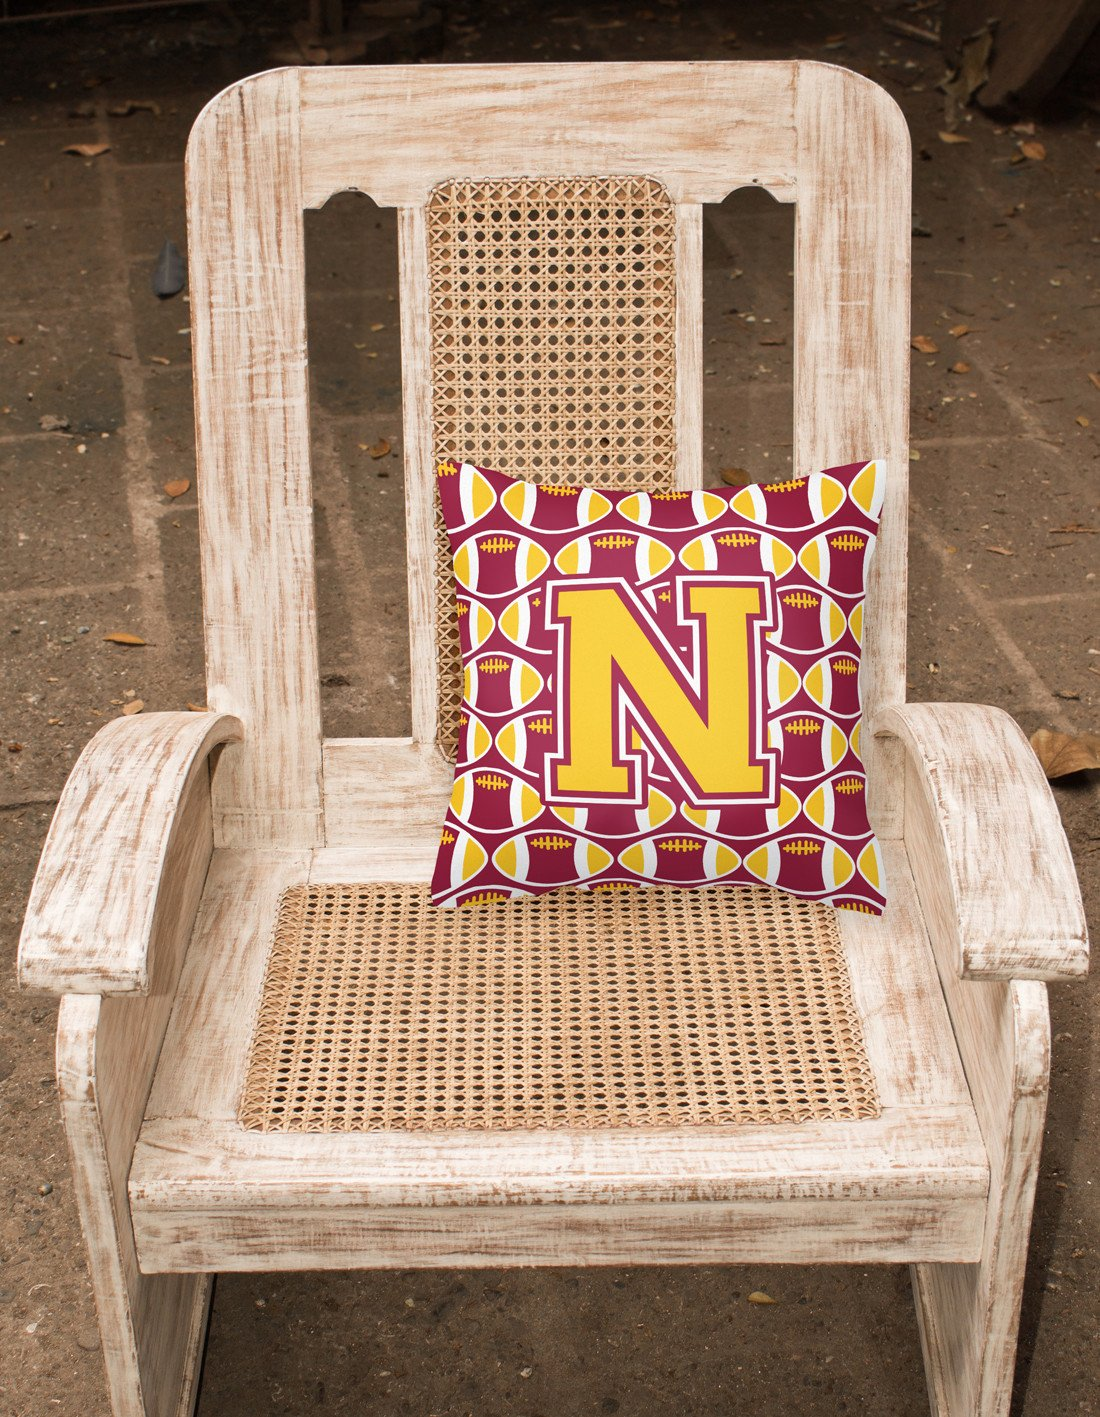 Letter N Football Maroon and Gold Fabric Decorative Pillow CJ1081-NPW1414 by Caroline's Treasures